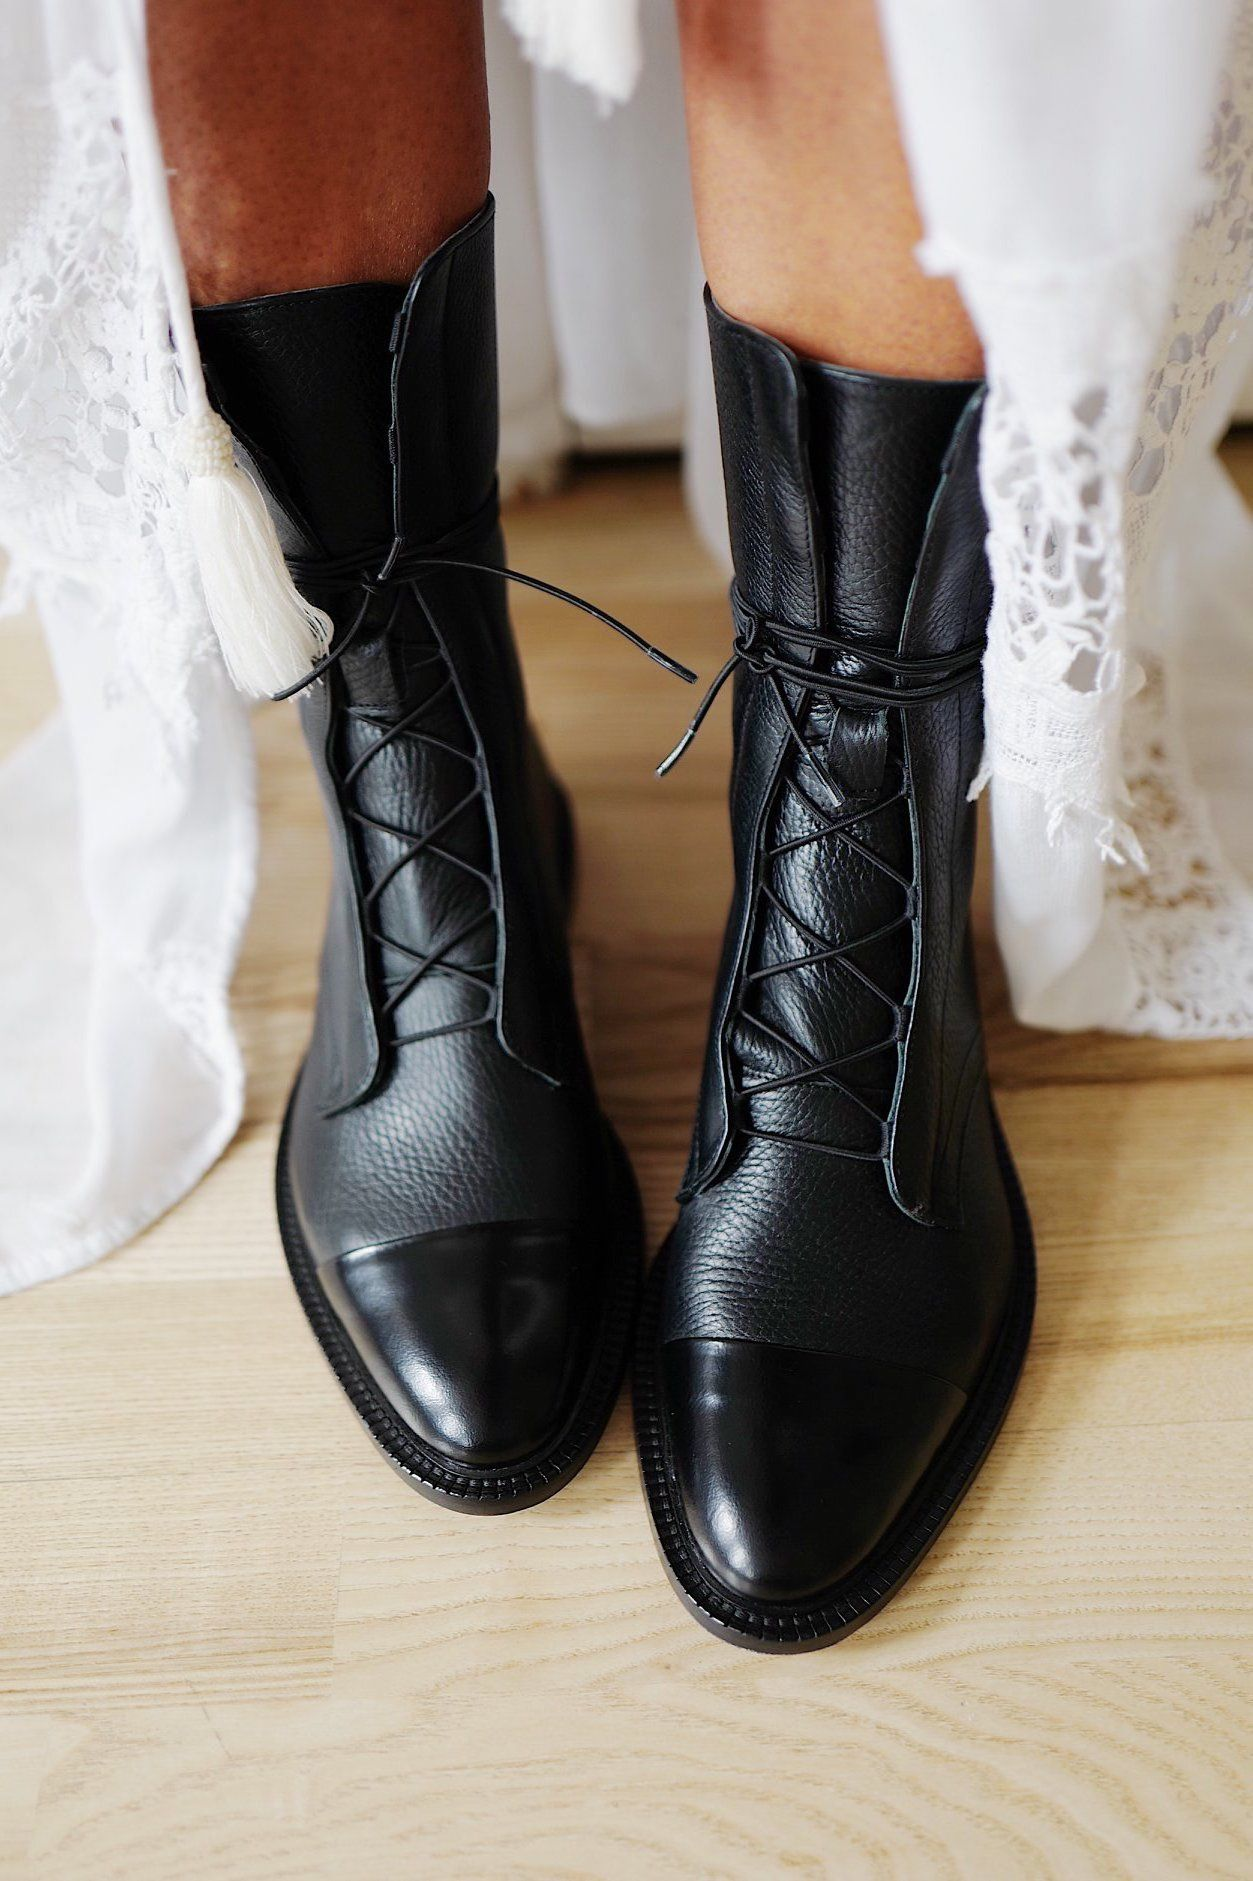 Leather Brogue Boots in 2020 | Boots, Black boots, Leather